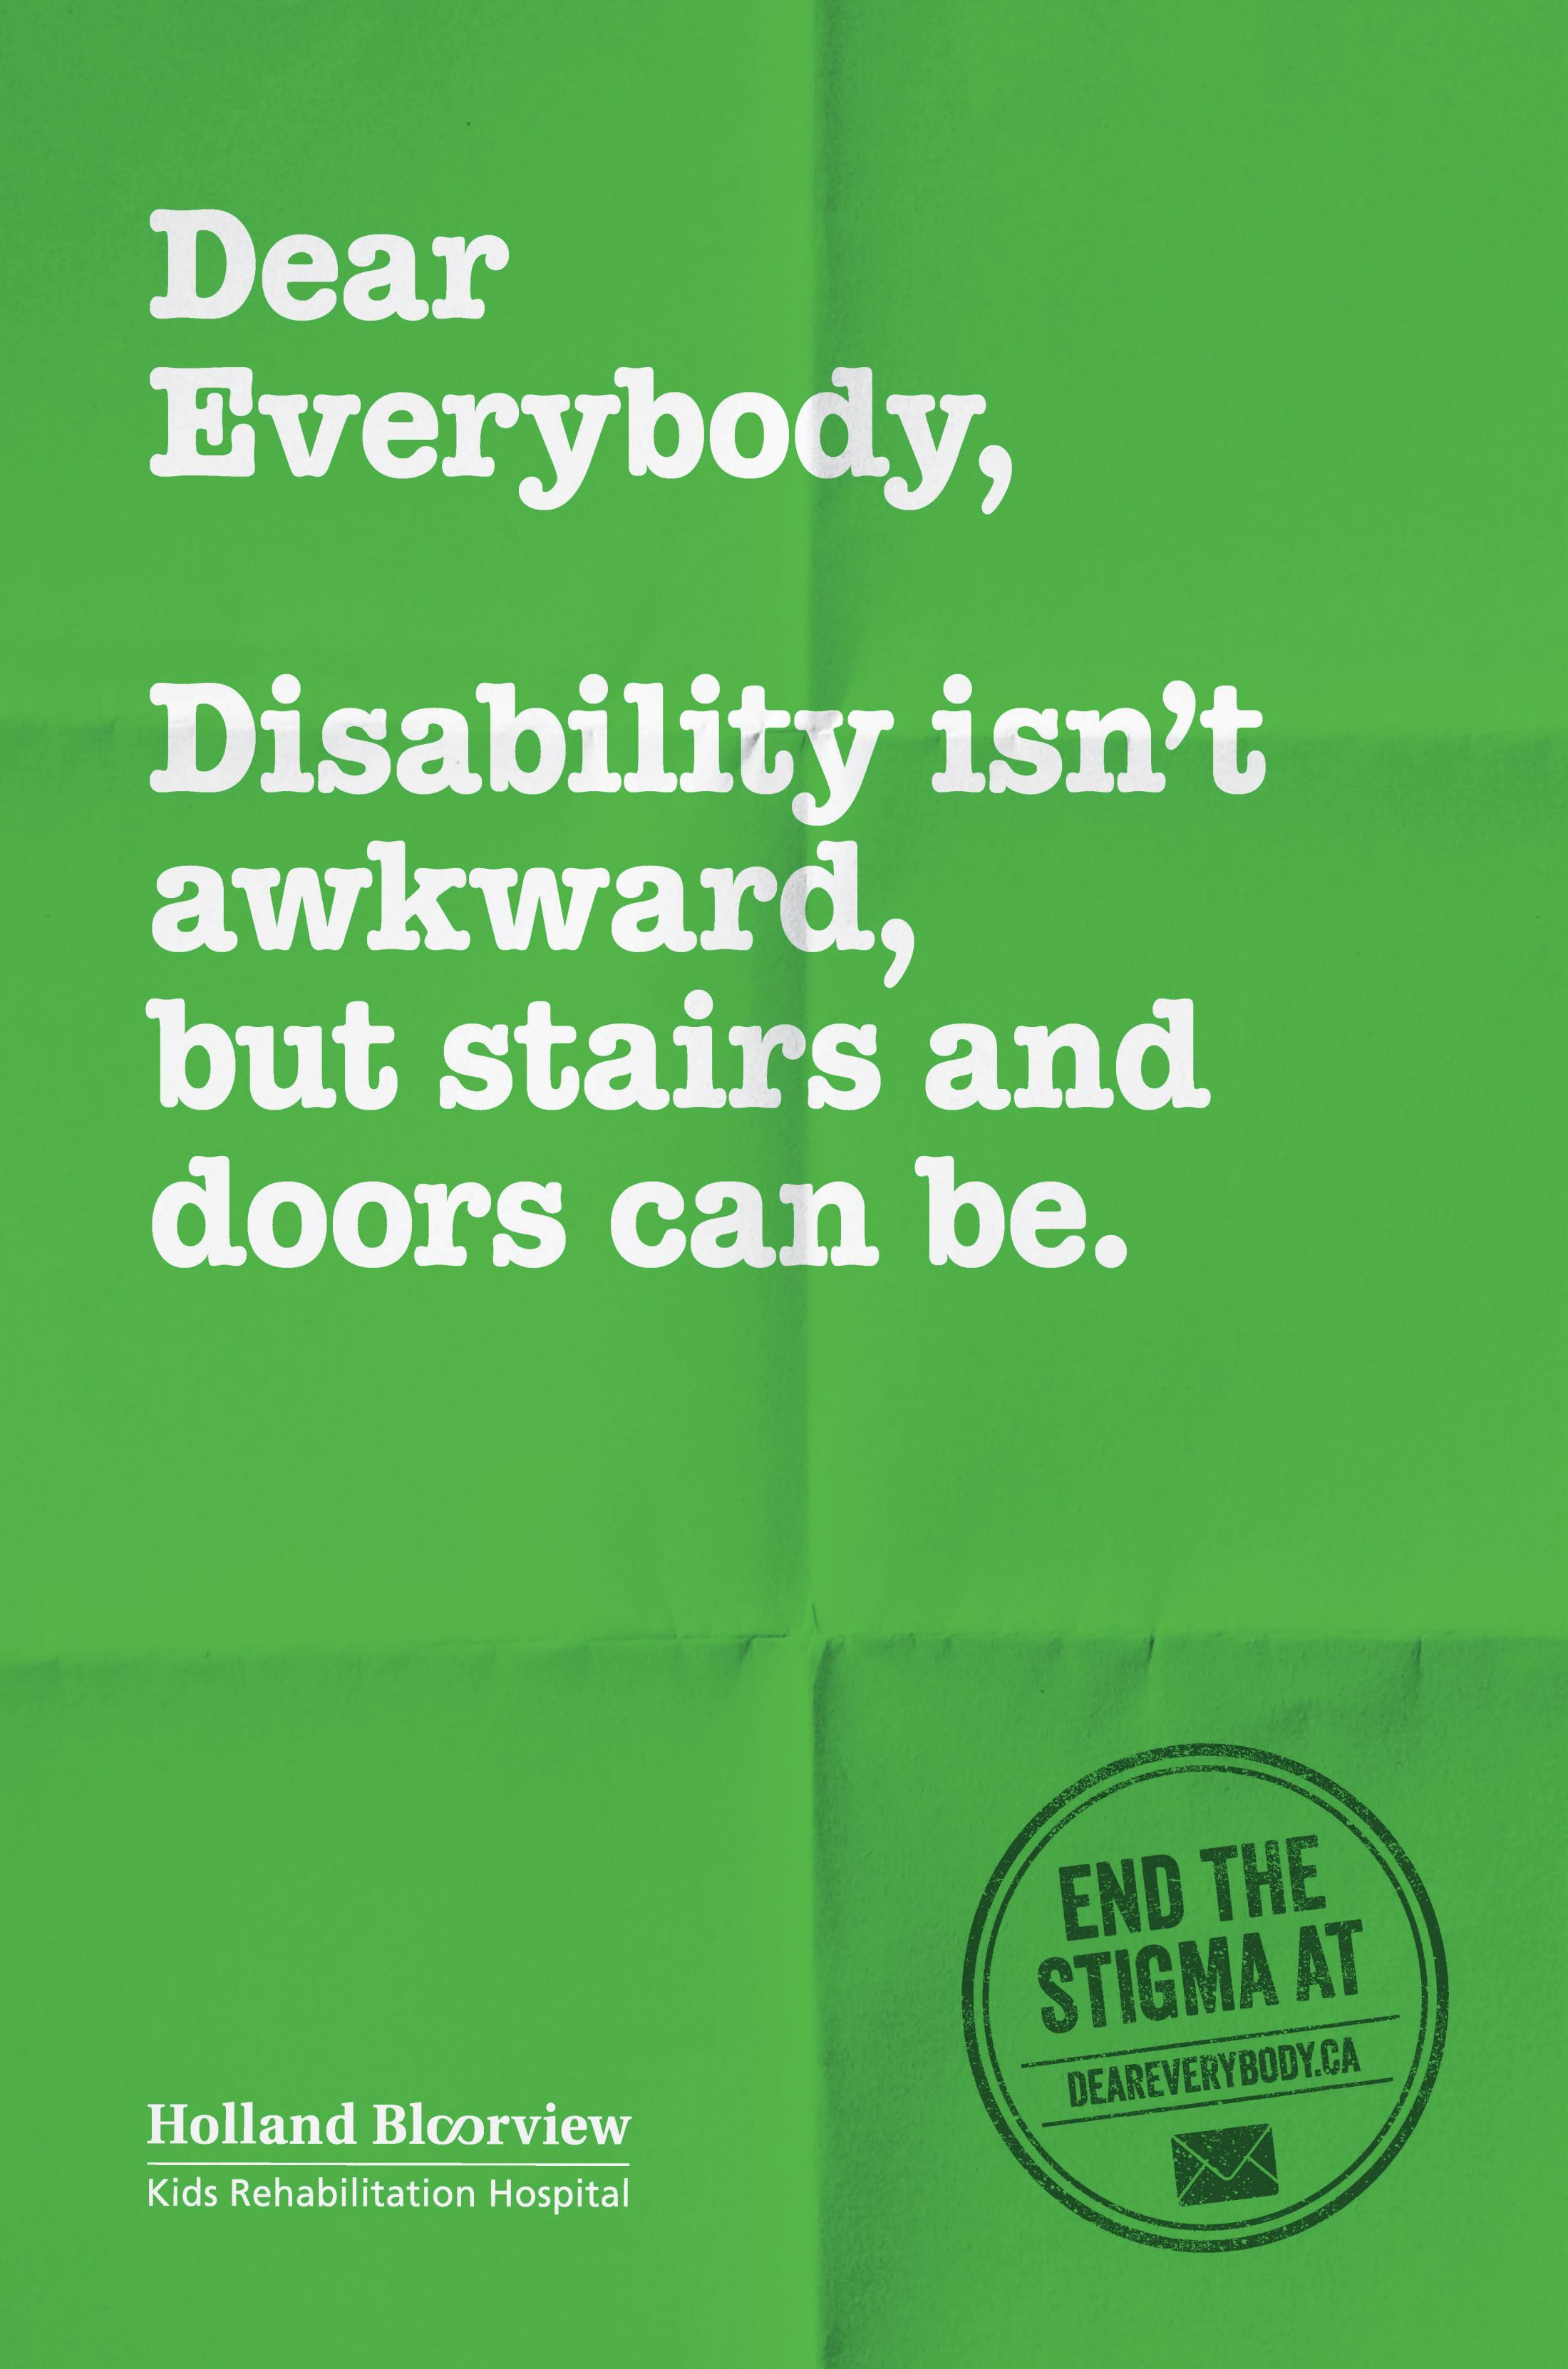 Holland Bloorview Kids Rehabilitation Outdoor Ad - Dear Everybody, 2